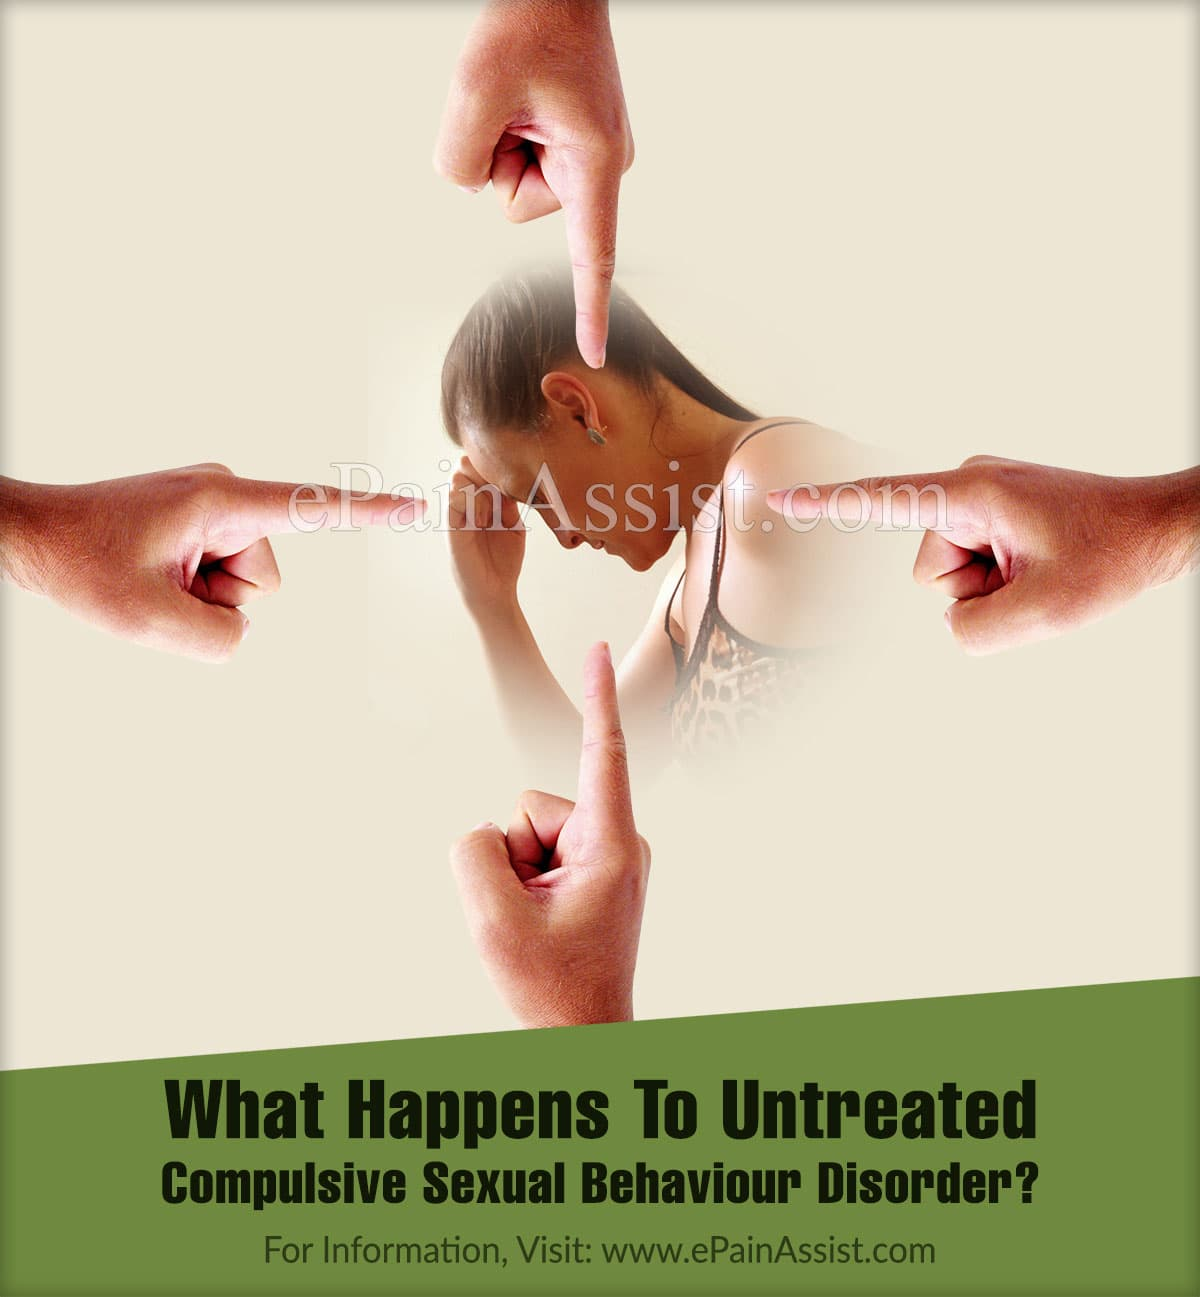 What Happens To Untreated Compulsive Sexual Behaviour Disorder?